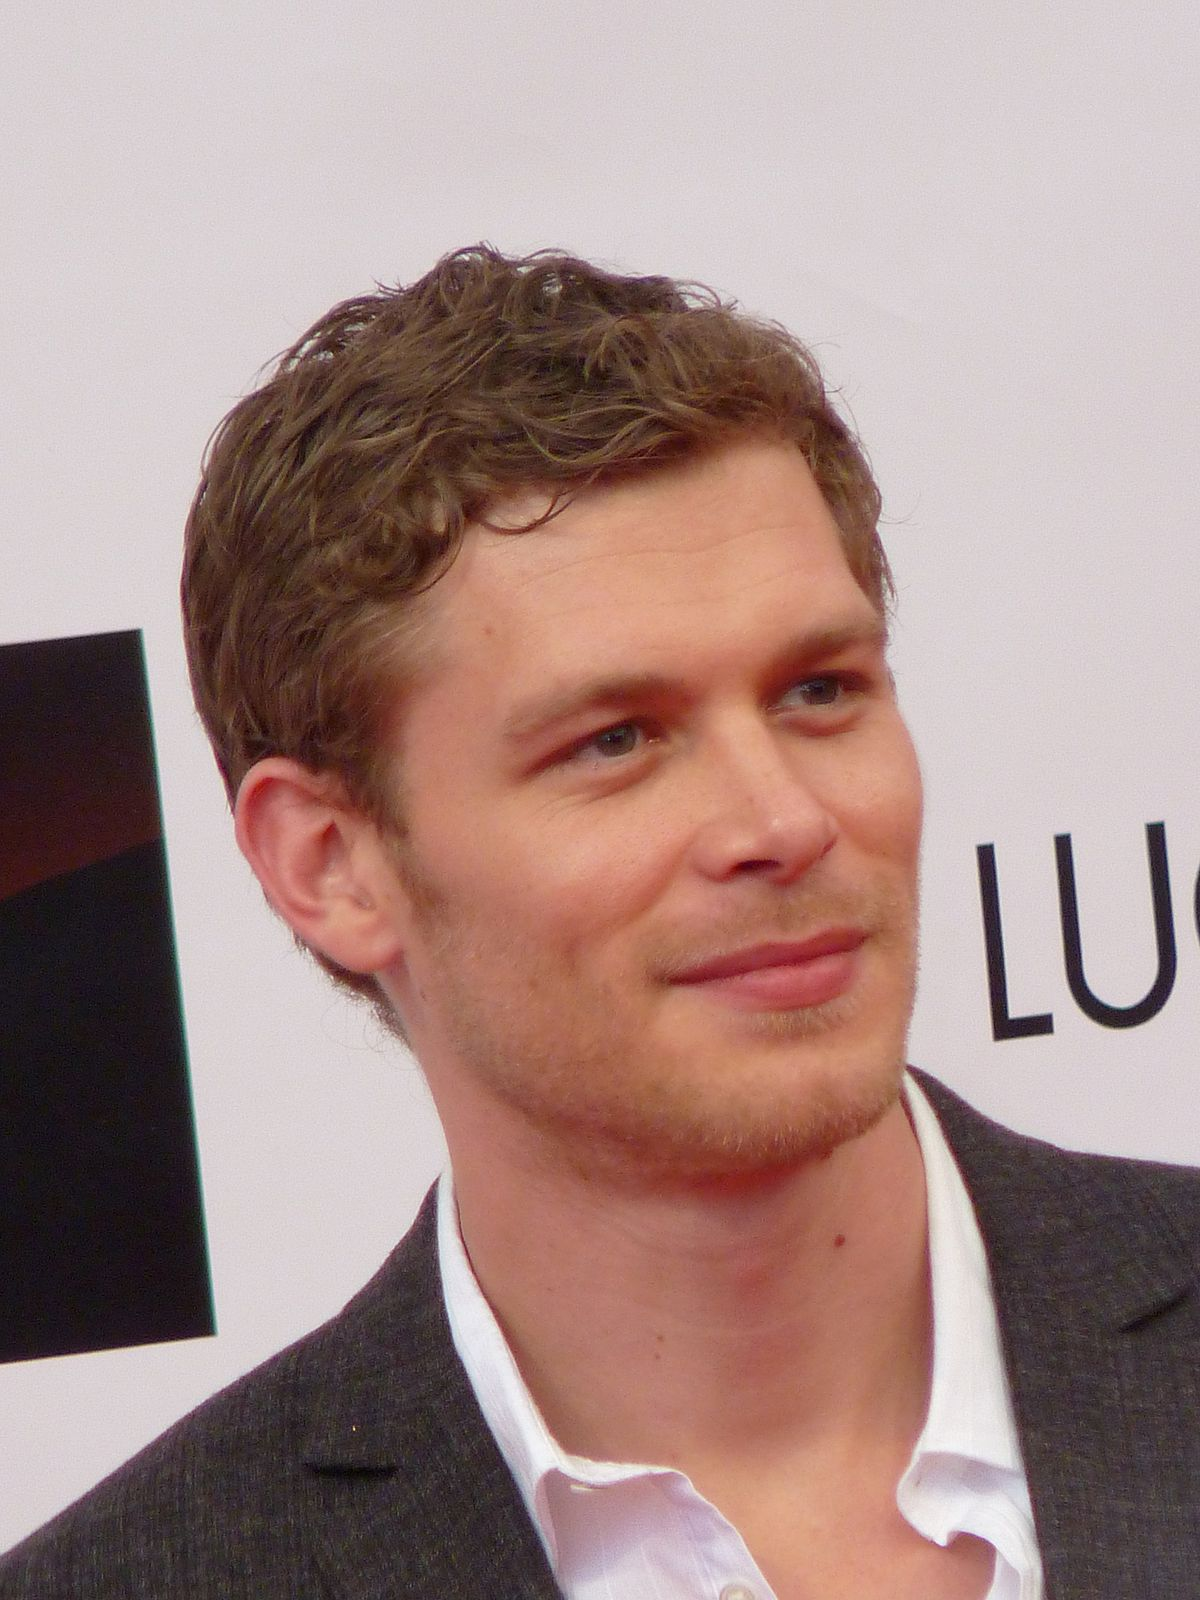 Joseph Morgan - Wikipedia Joseph